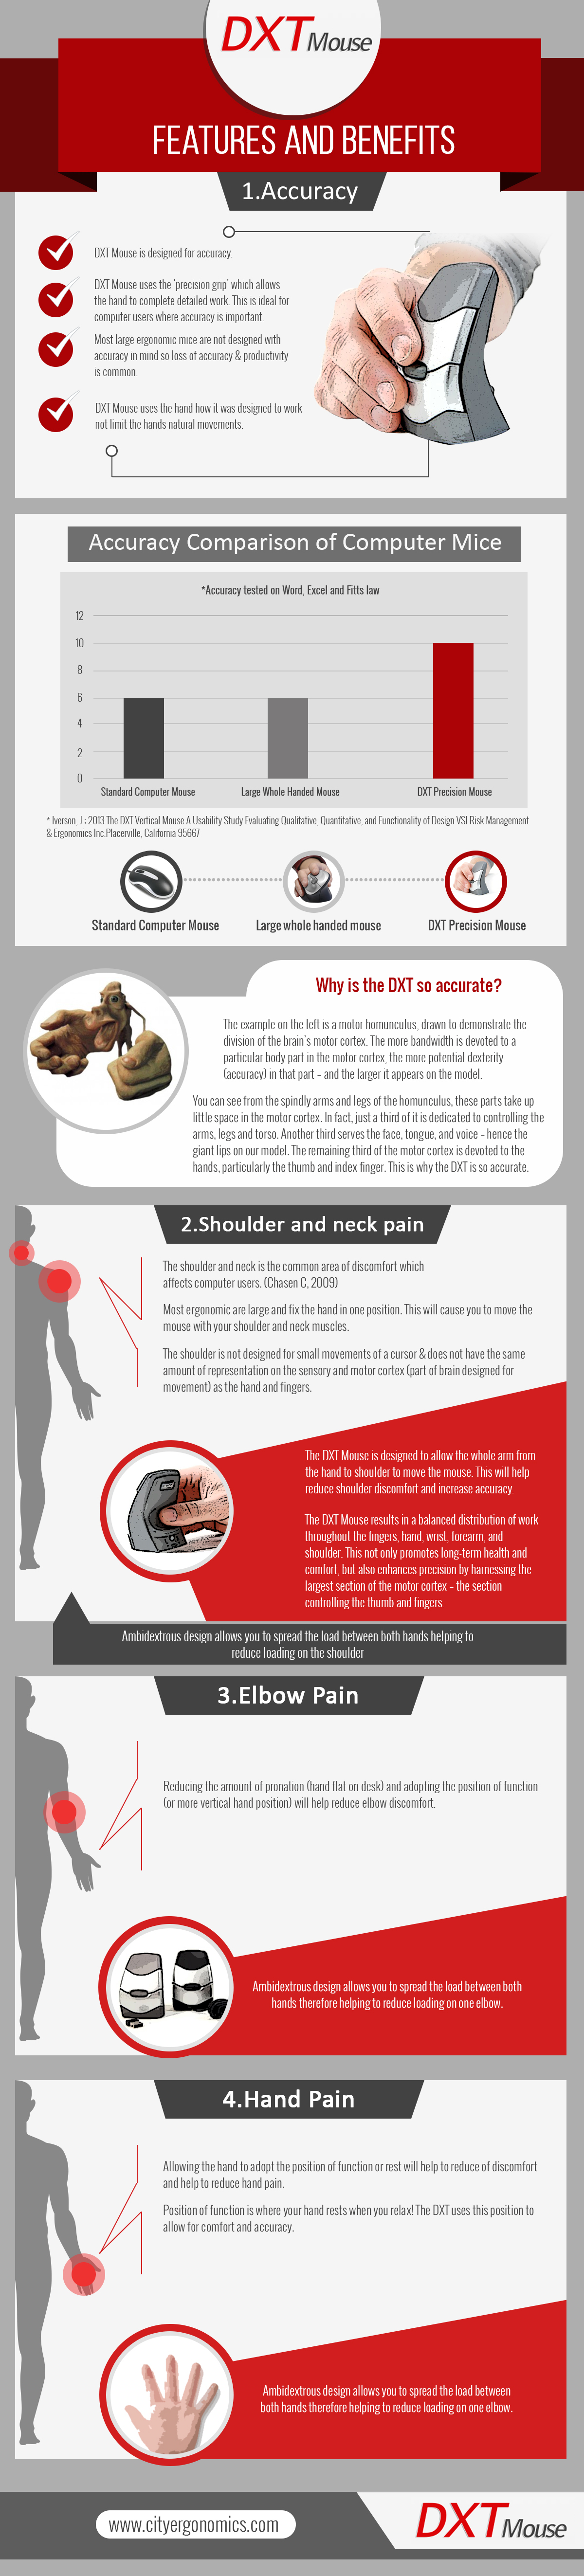 DXT Mouse Features and Benefits Infographic